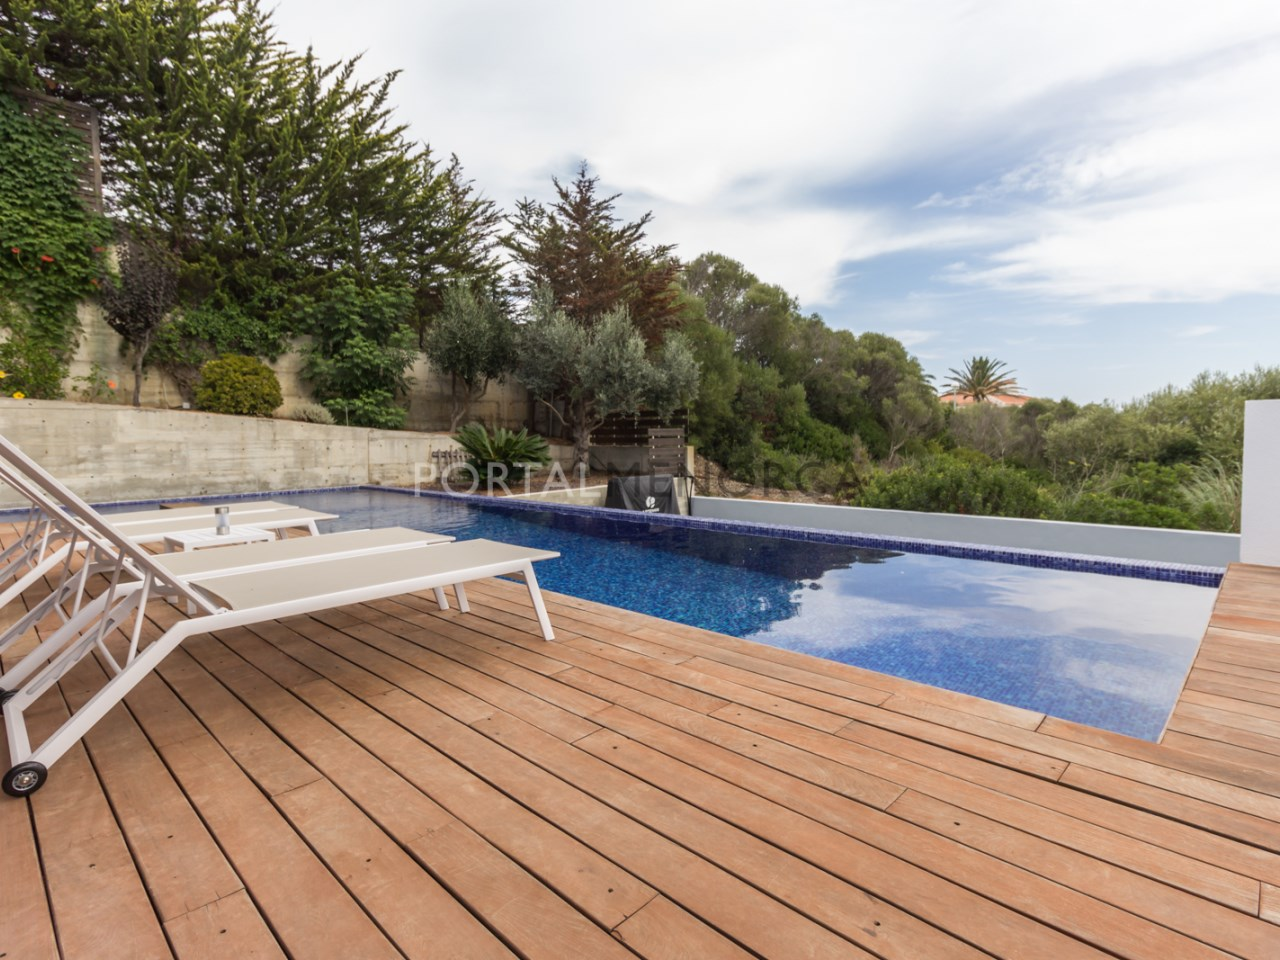 villa with swimming pool in cala Llonga, Menorca (3 de 23)